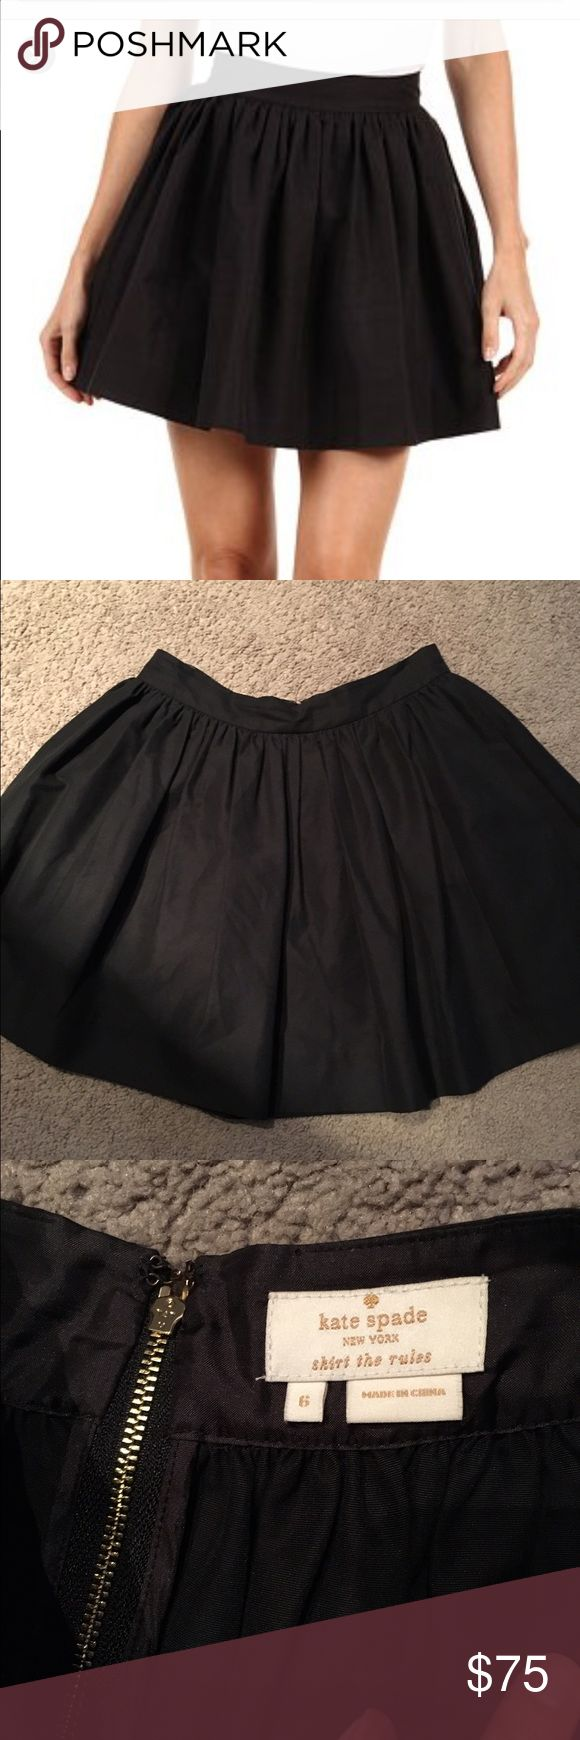 Kate spade coreen cupcake skirt Adorable and flirty cupcake skirt! Worn a few times! In great condition! kate spade Skirts Mini